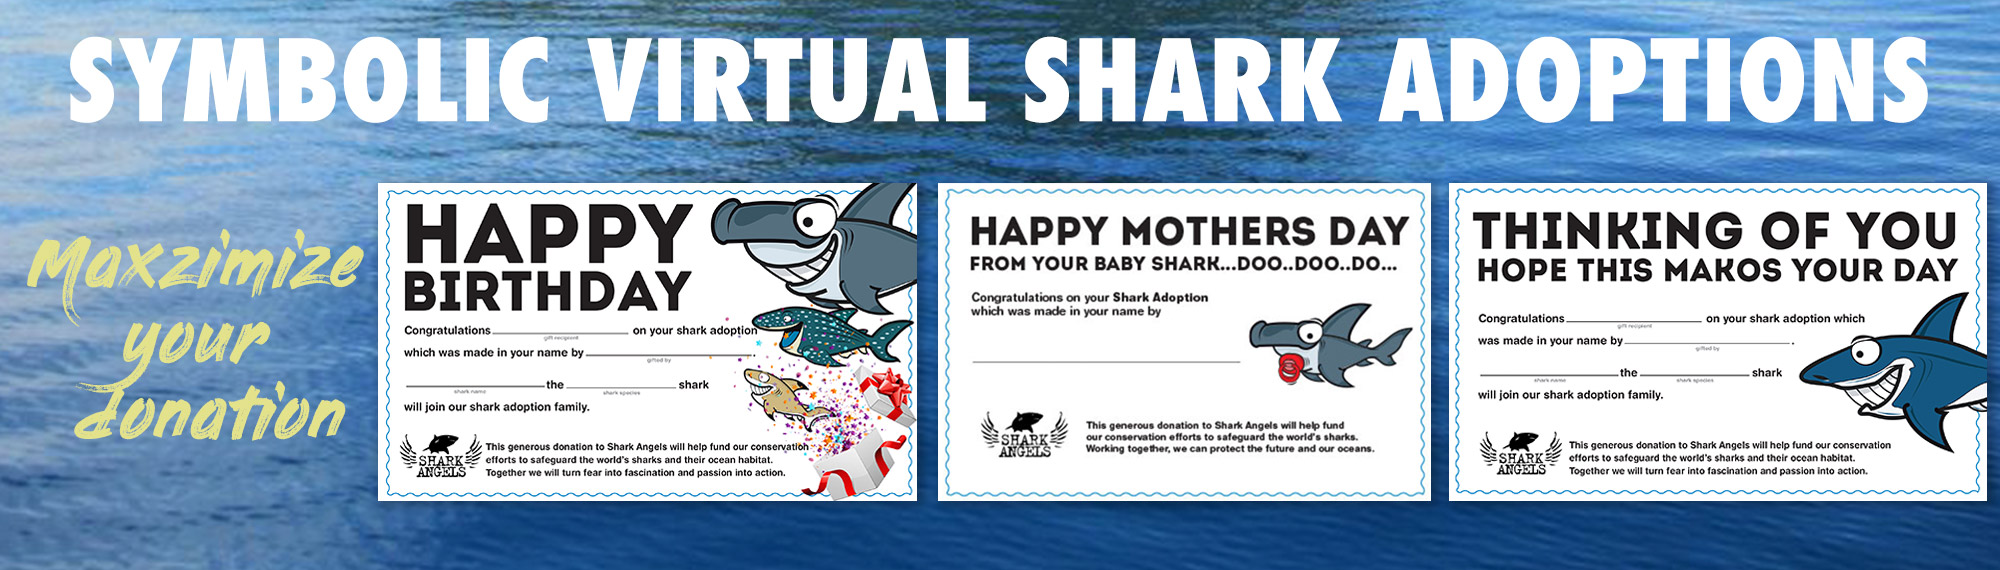 category-banner-adoptions-virtual-mothersday.jpg